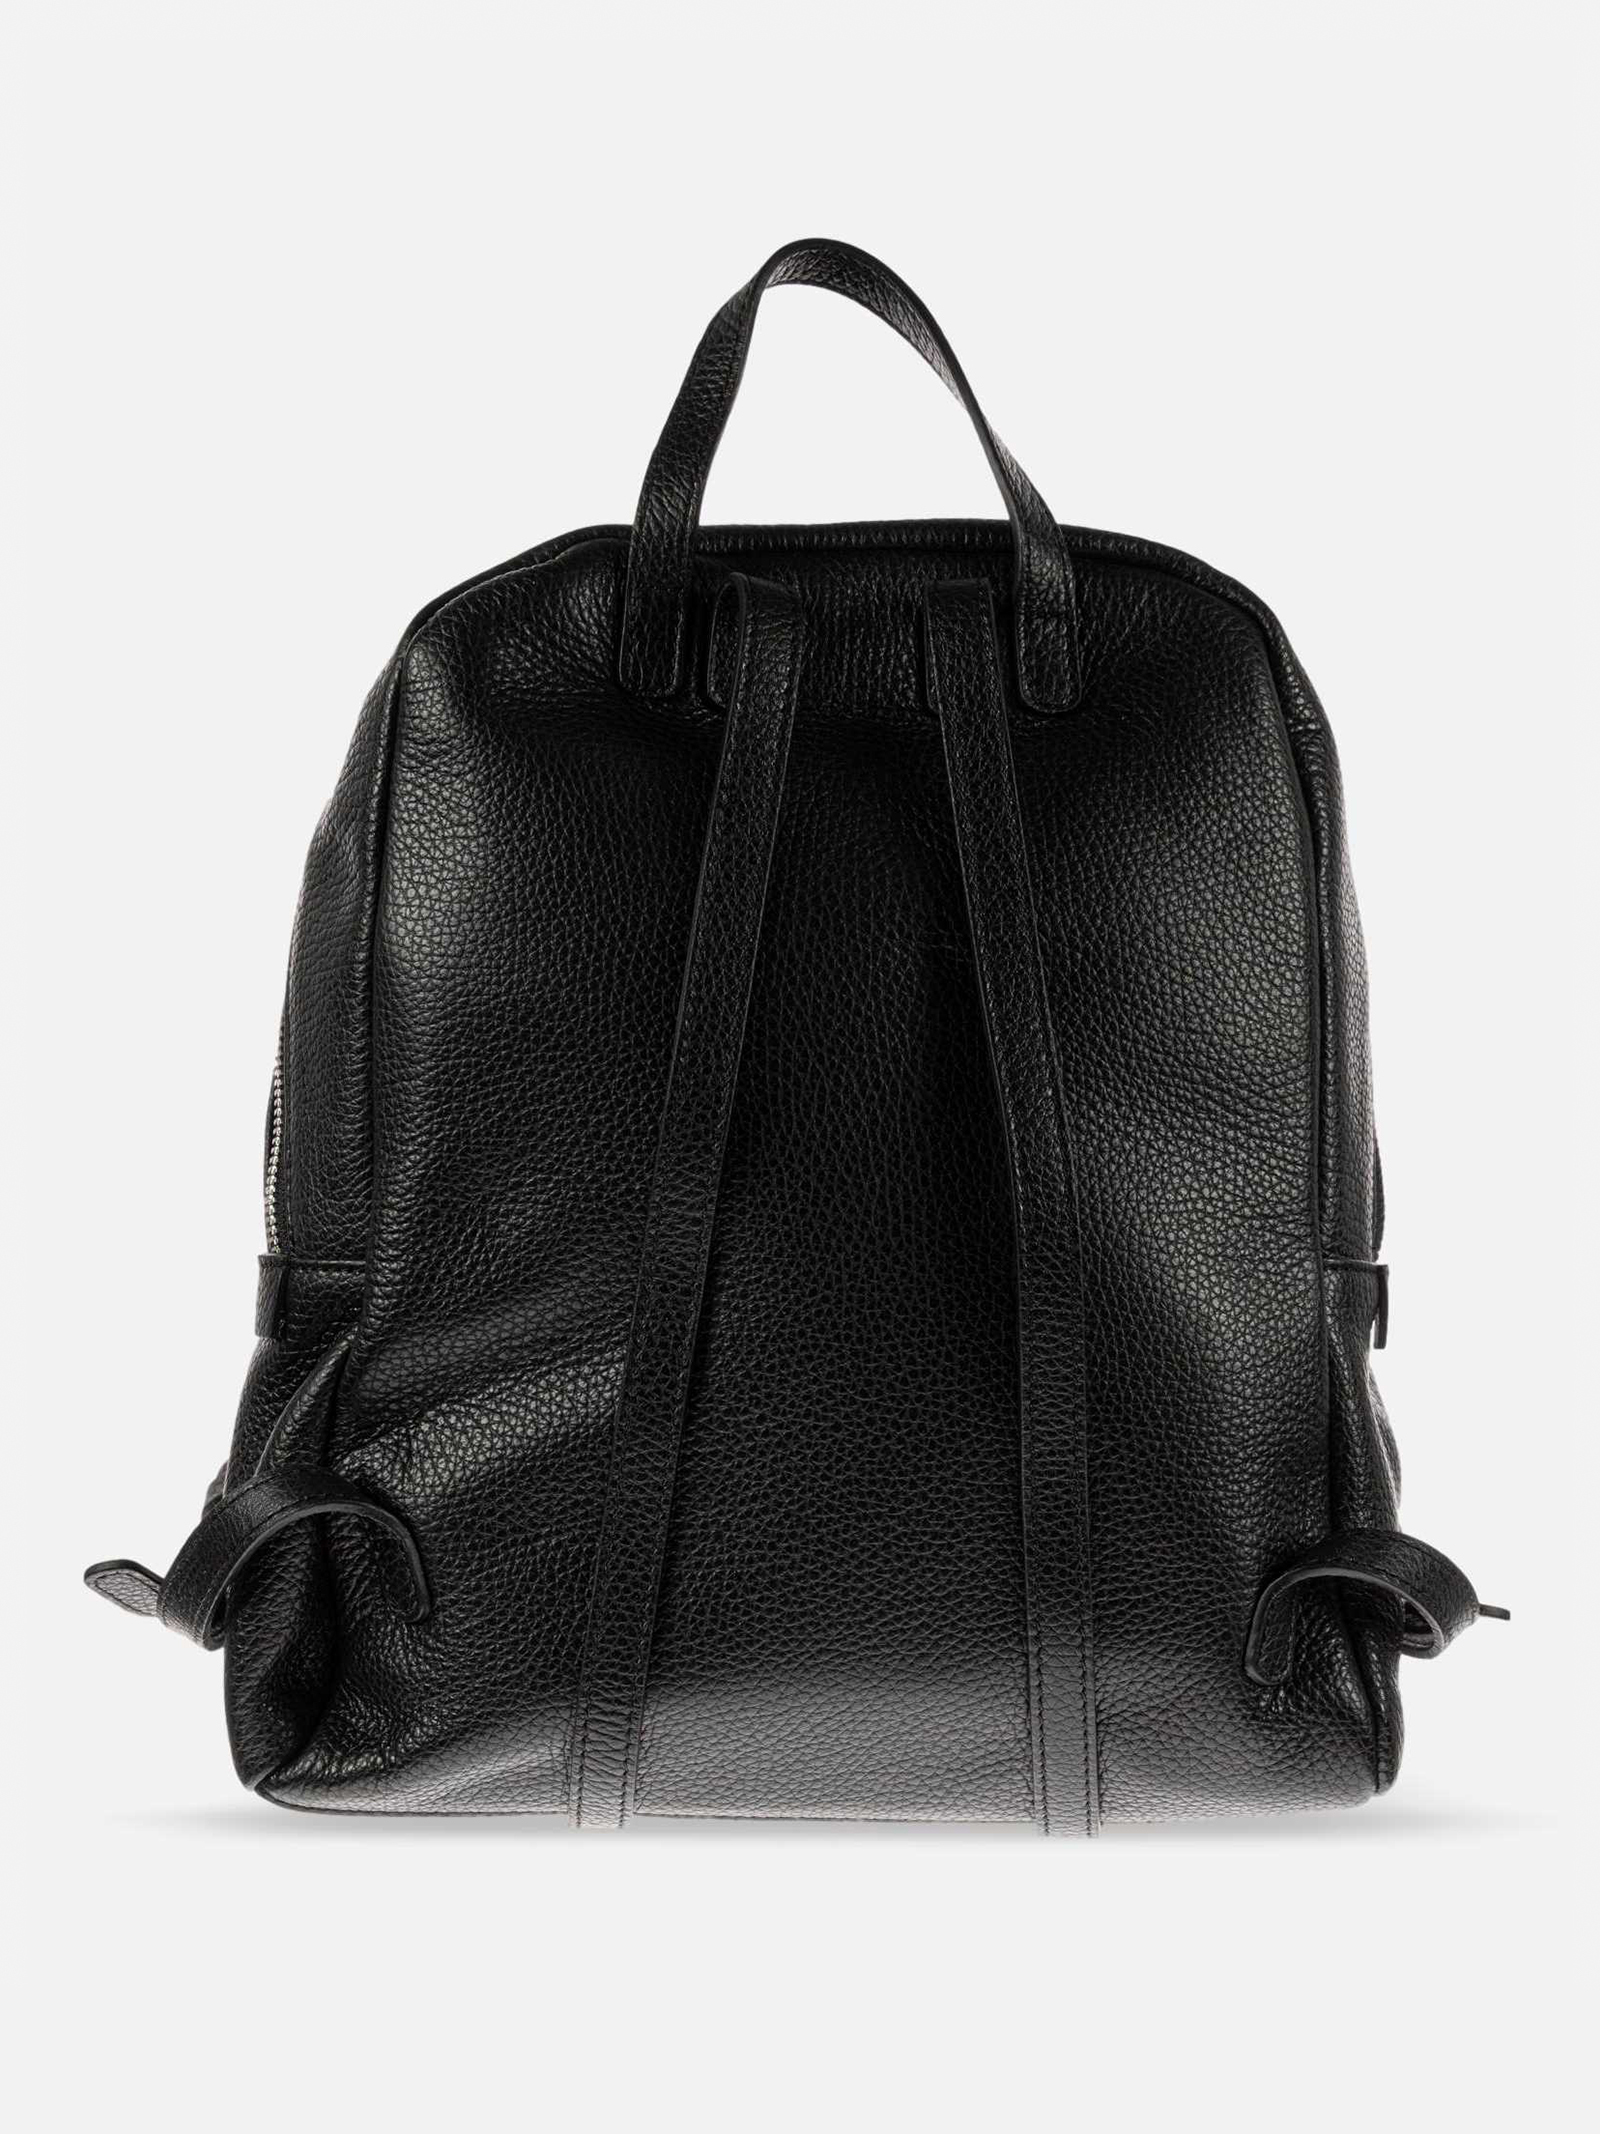 Backpack Gianni Chiarini GIANNI CHIARINI | 5032286 | ZN8605001